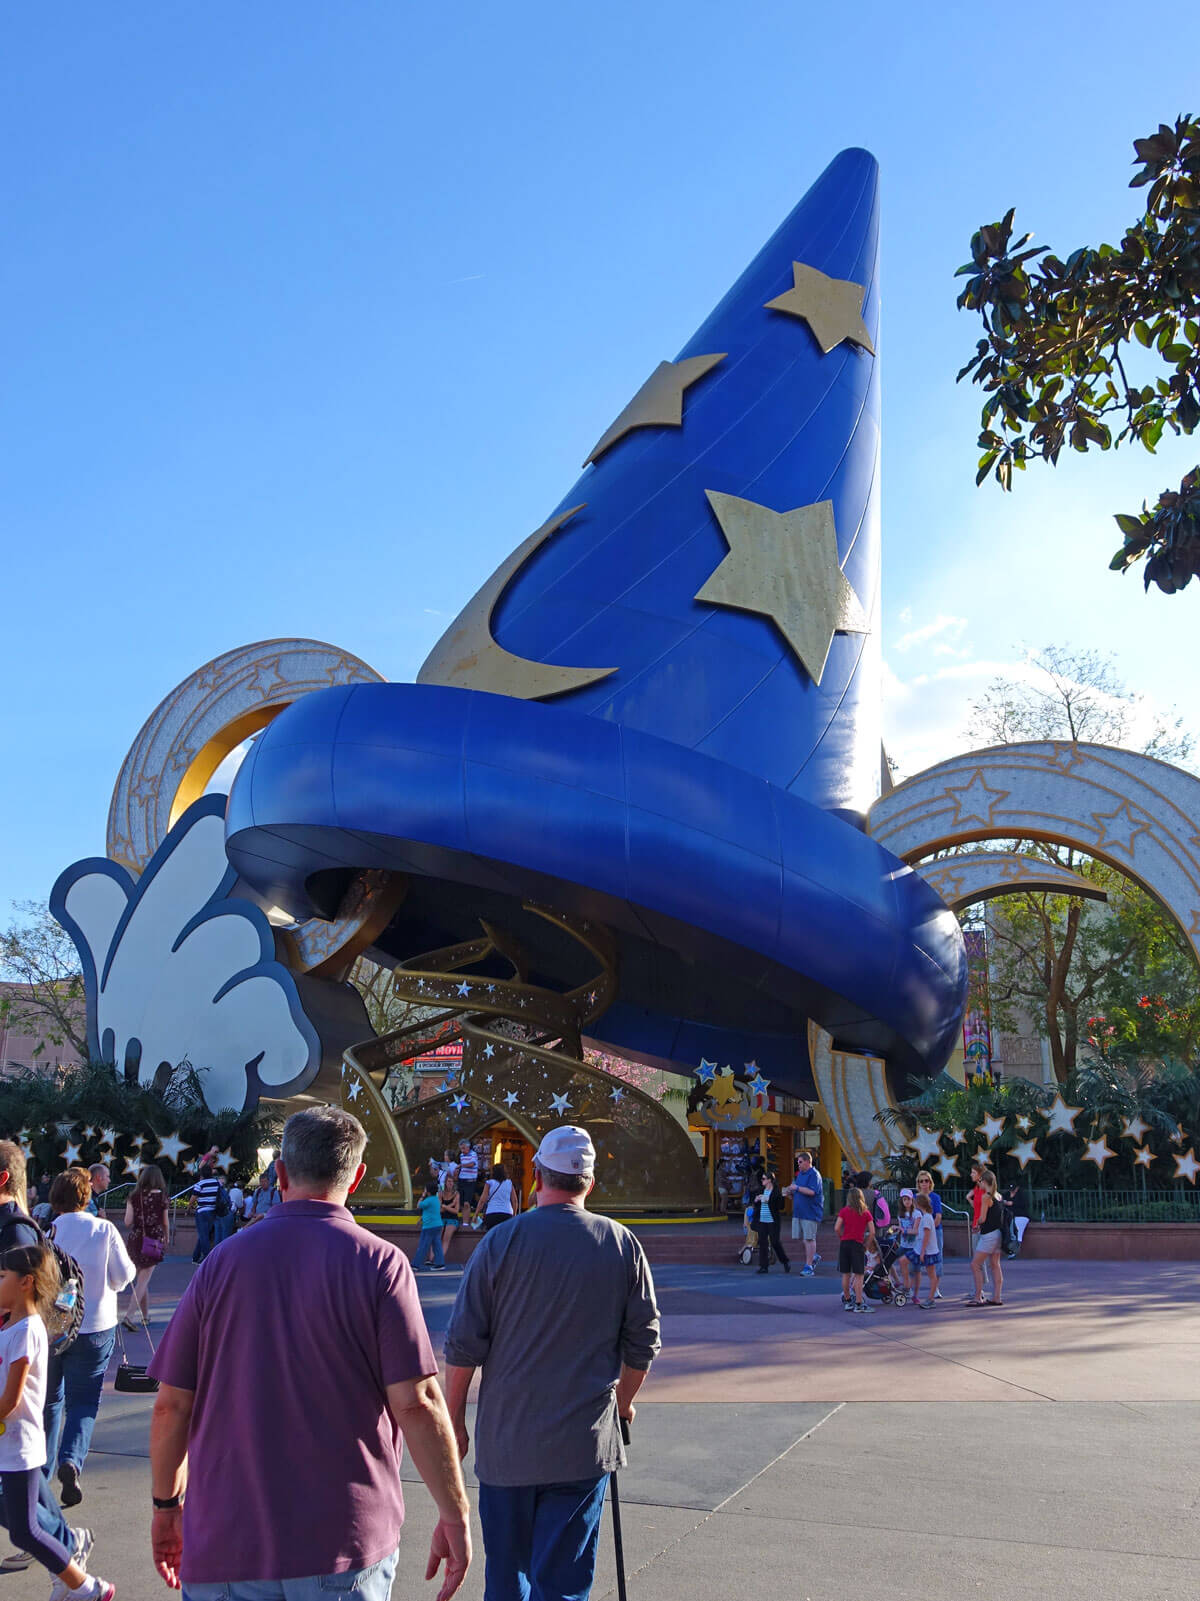 Disney Reimagines Hollywood Studios Without Sorcerer's Hat